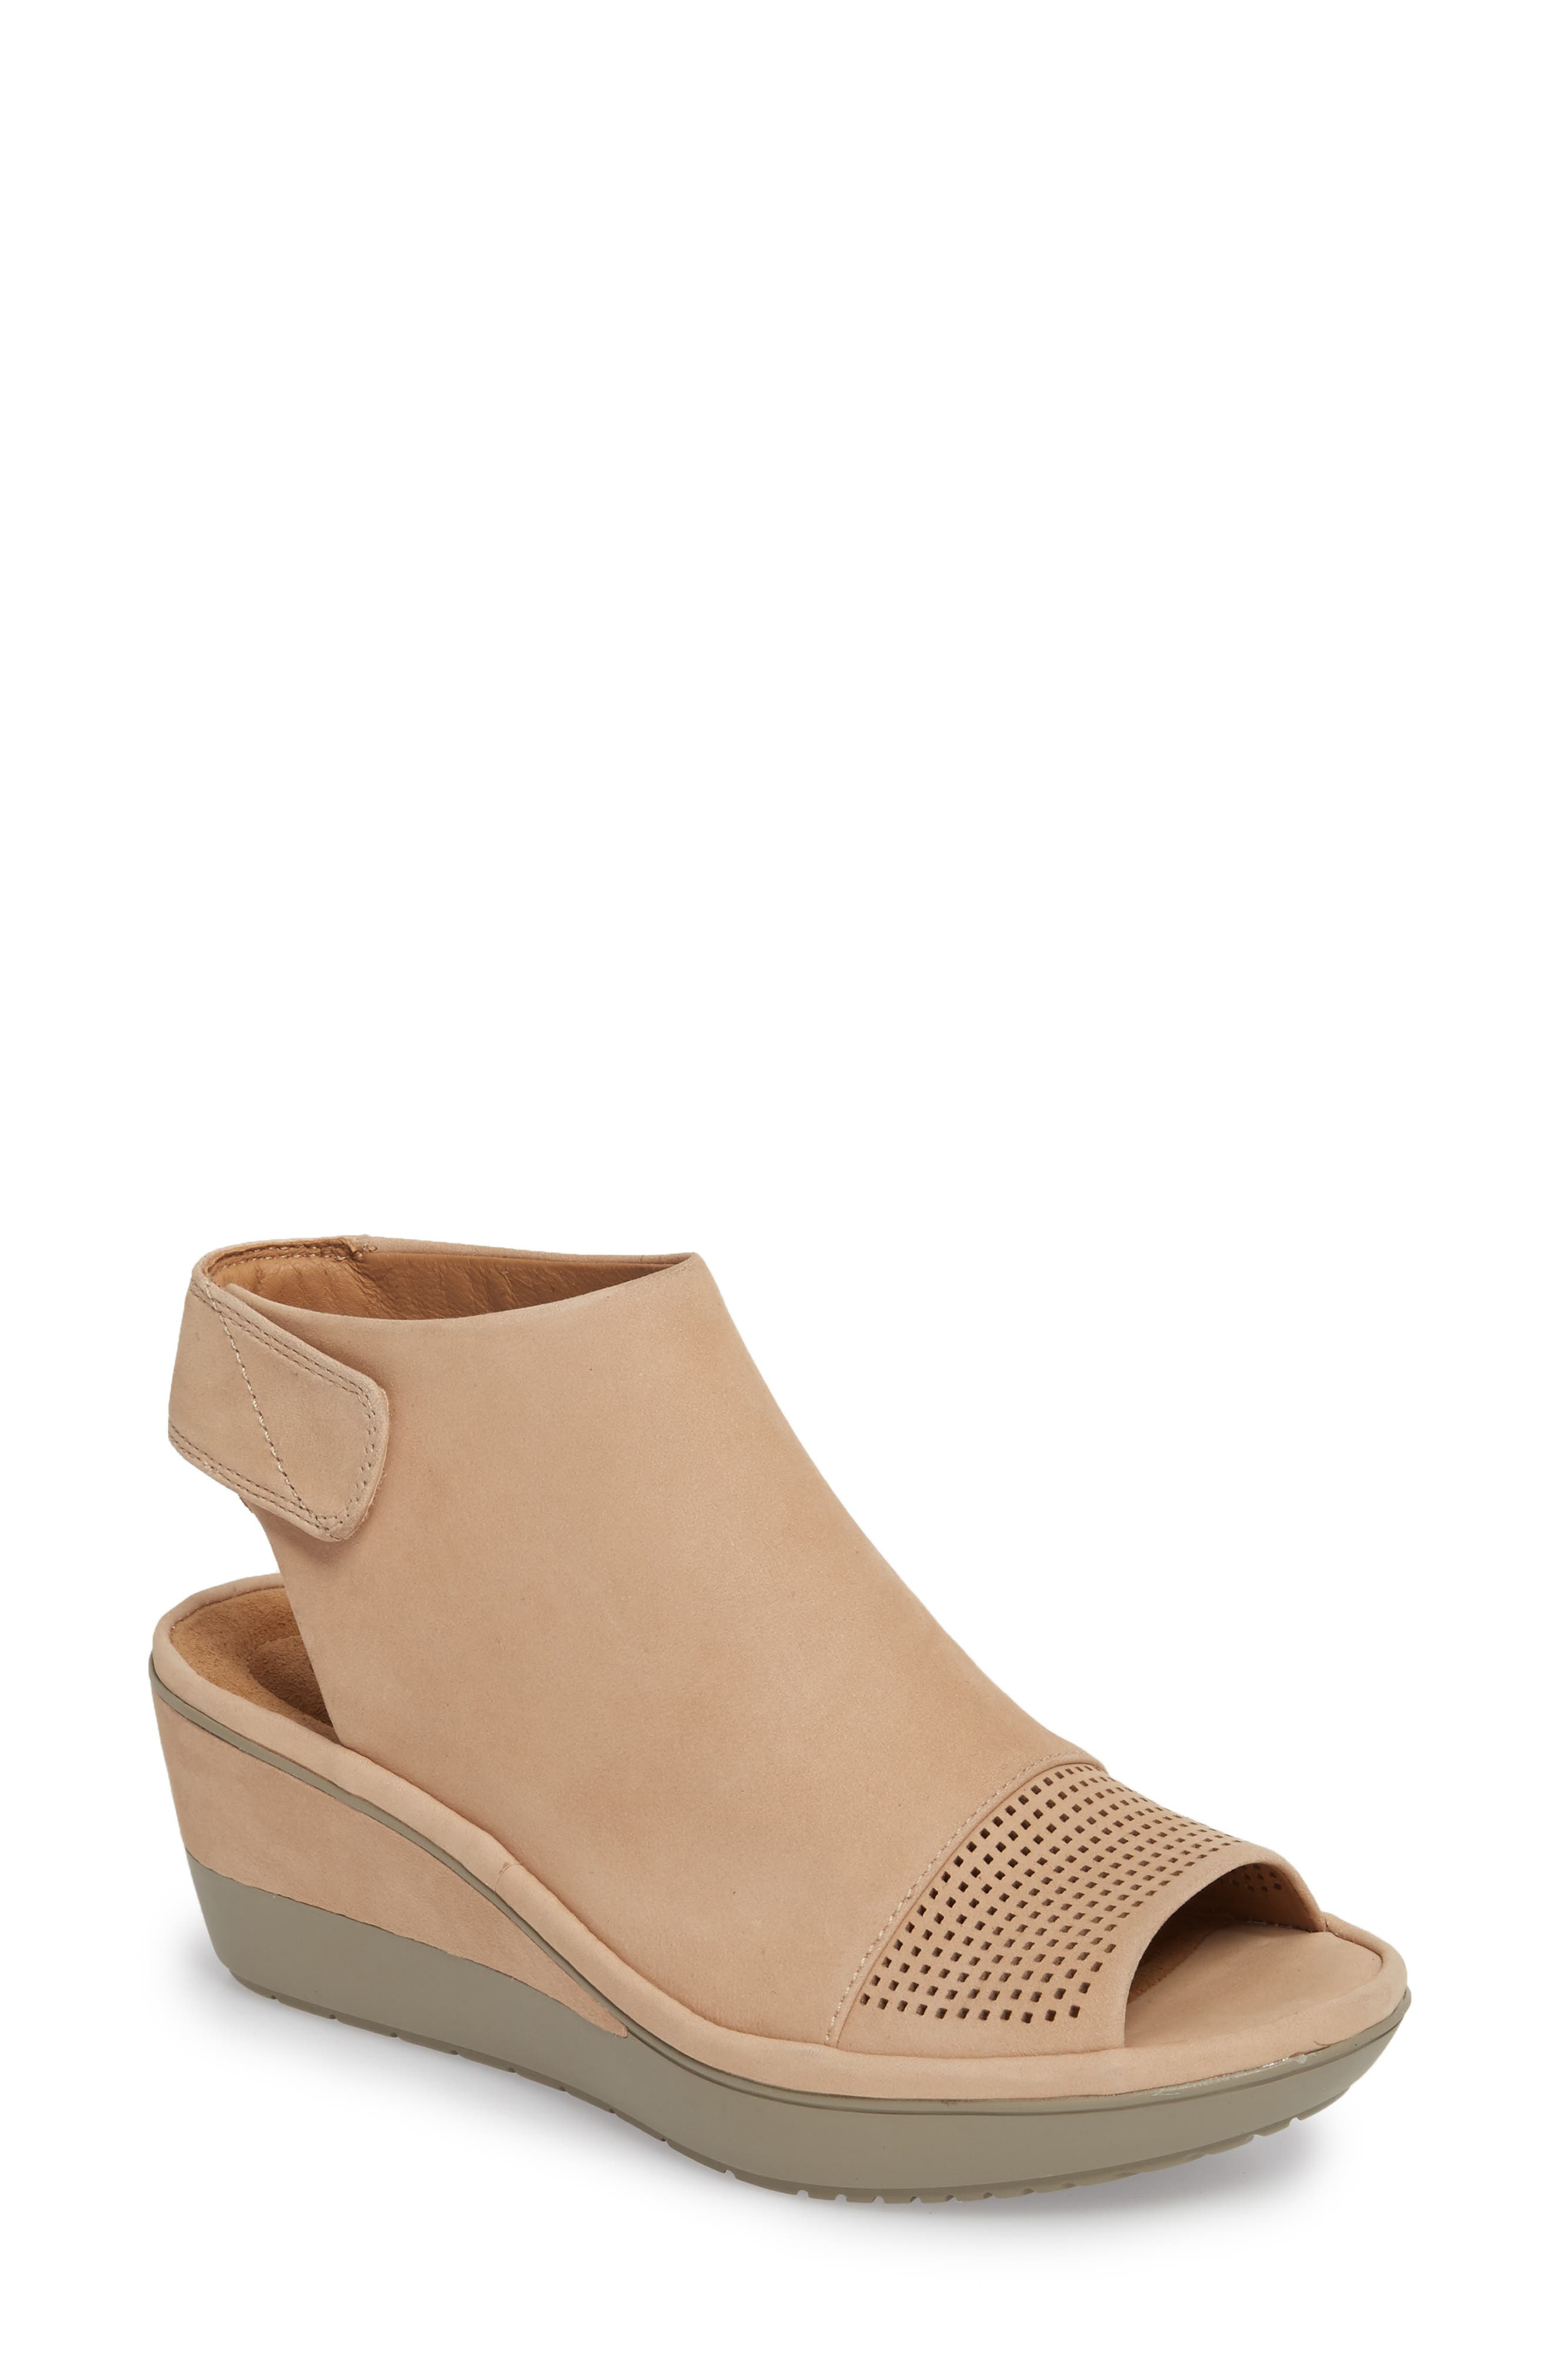 Wynnmere Abie Wedge Sandal,                             Main thumbnail 1, color,                             273